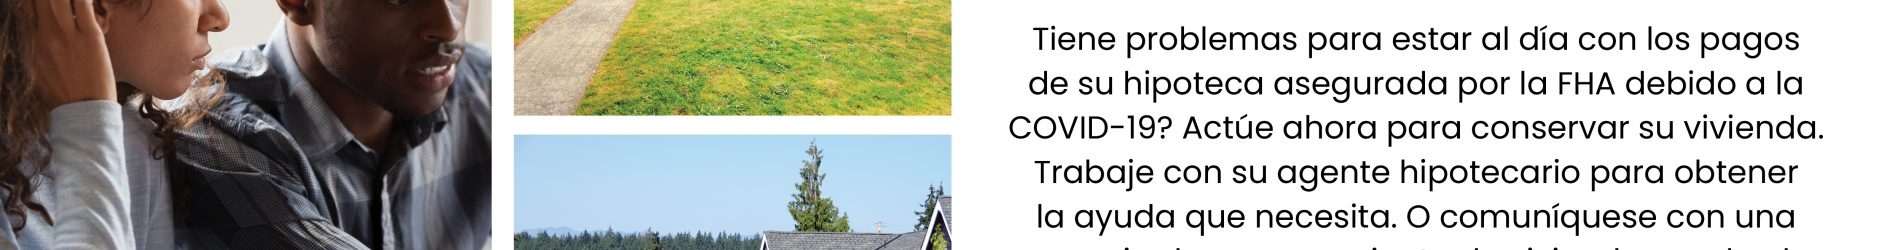 Spanish_Covid-19-1Mortgage-payment-relief-banner